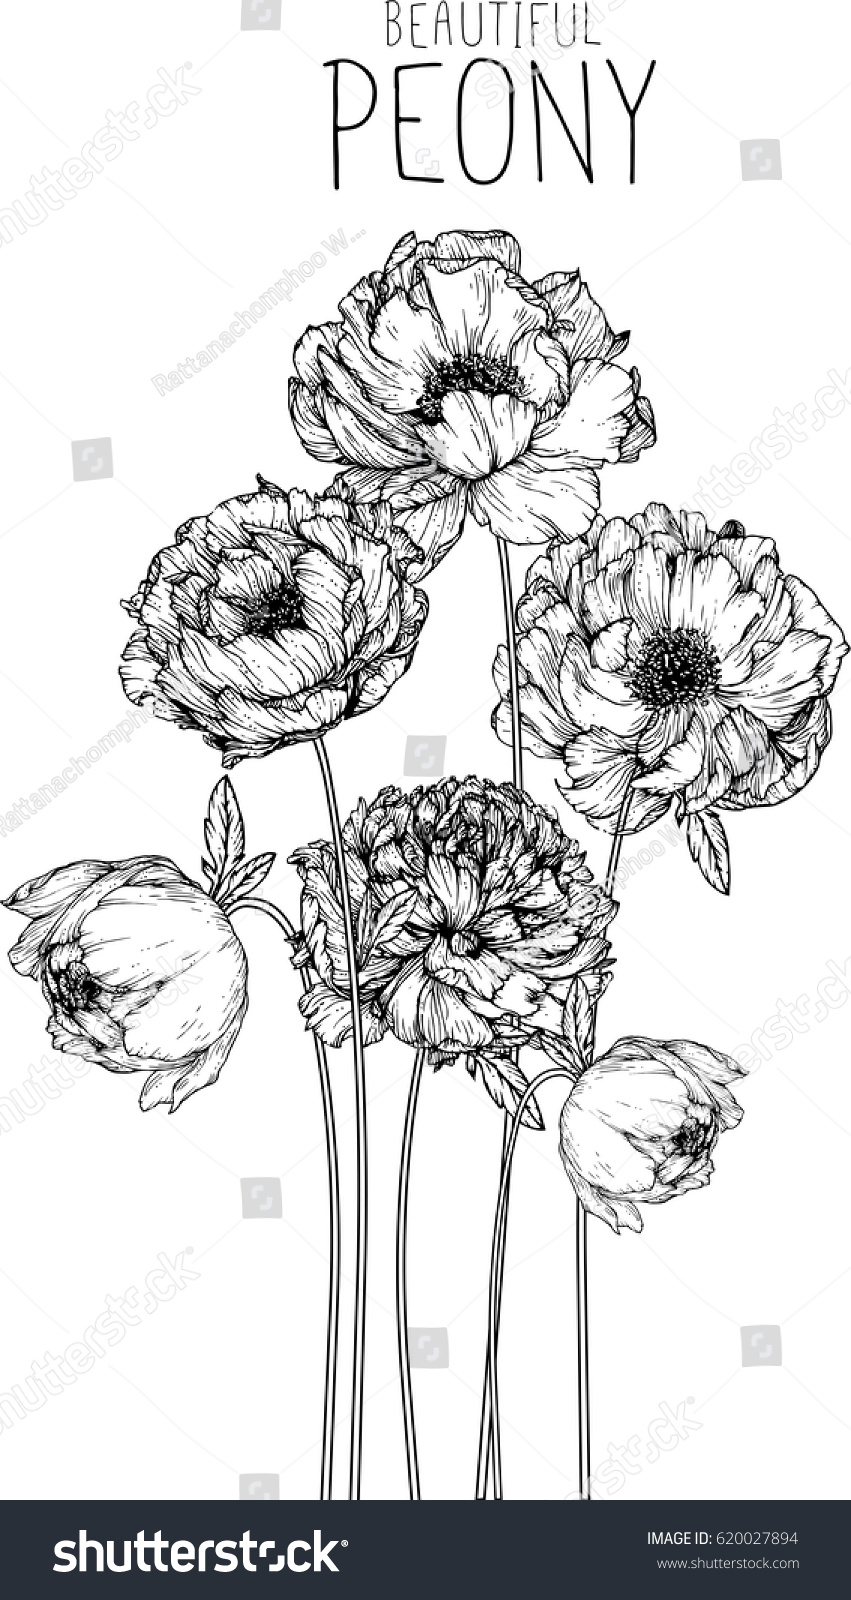 Peony Flower Line Drawing : Peony flowers drawing vector illustration line stock